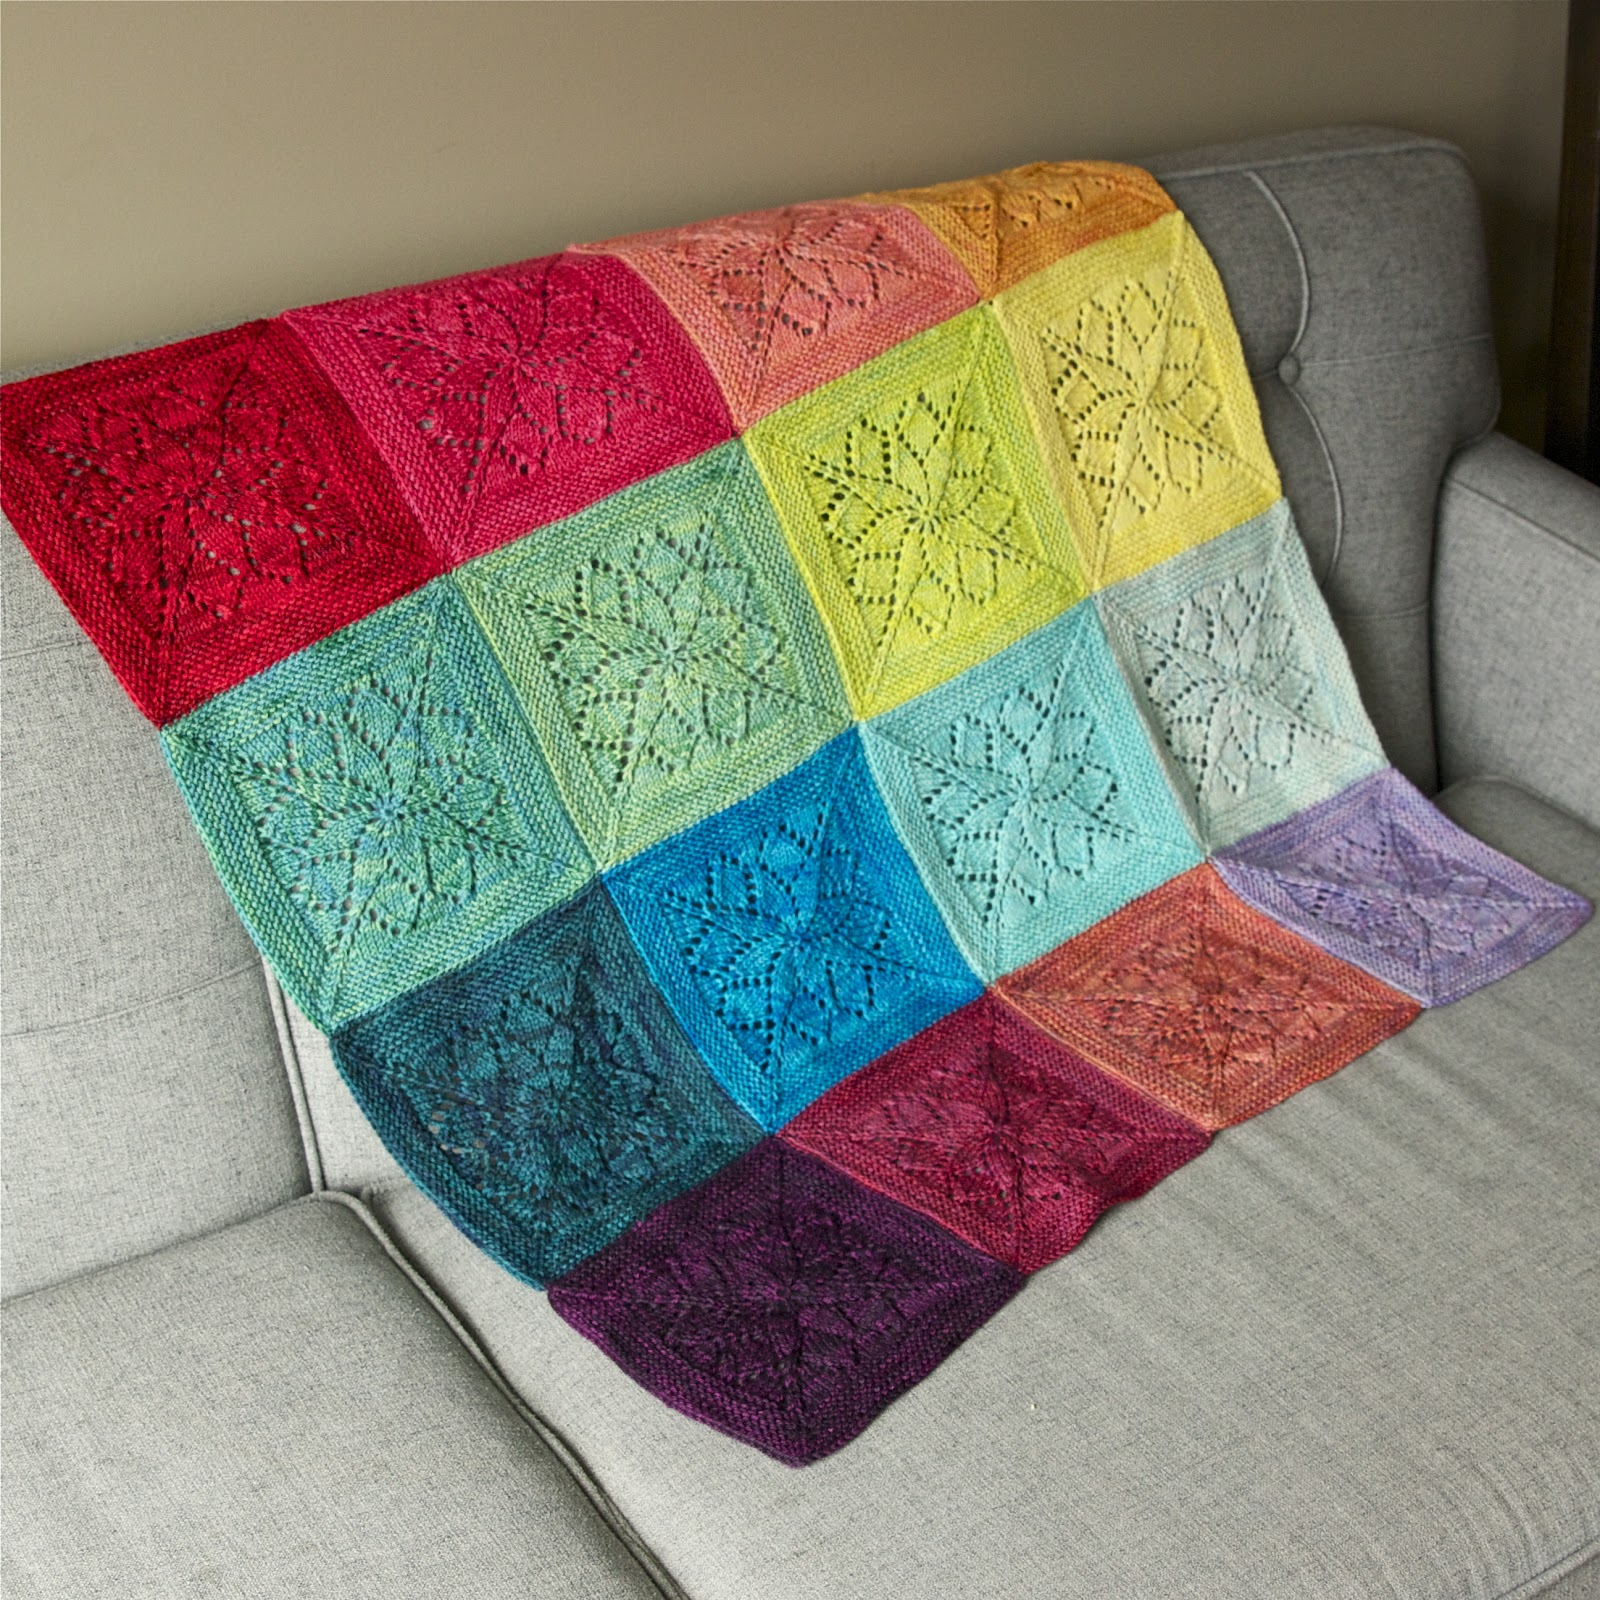 A blanket made of lace squares in a rainbow of colours is laying over a grey couch.